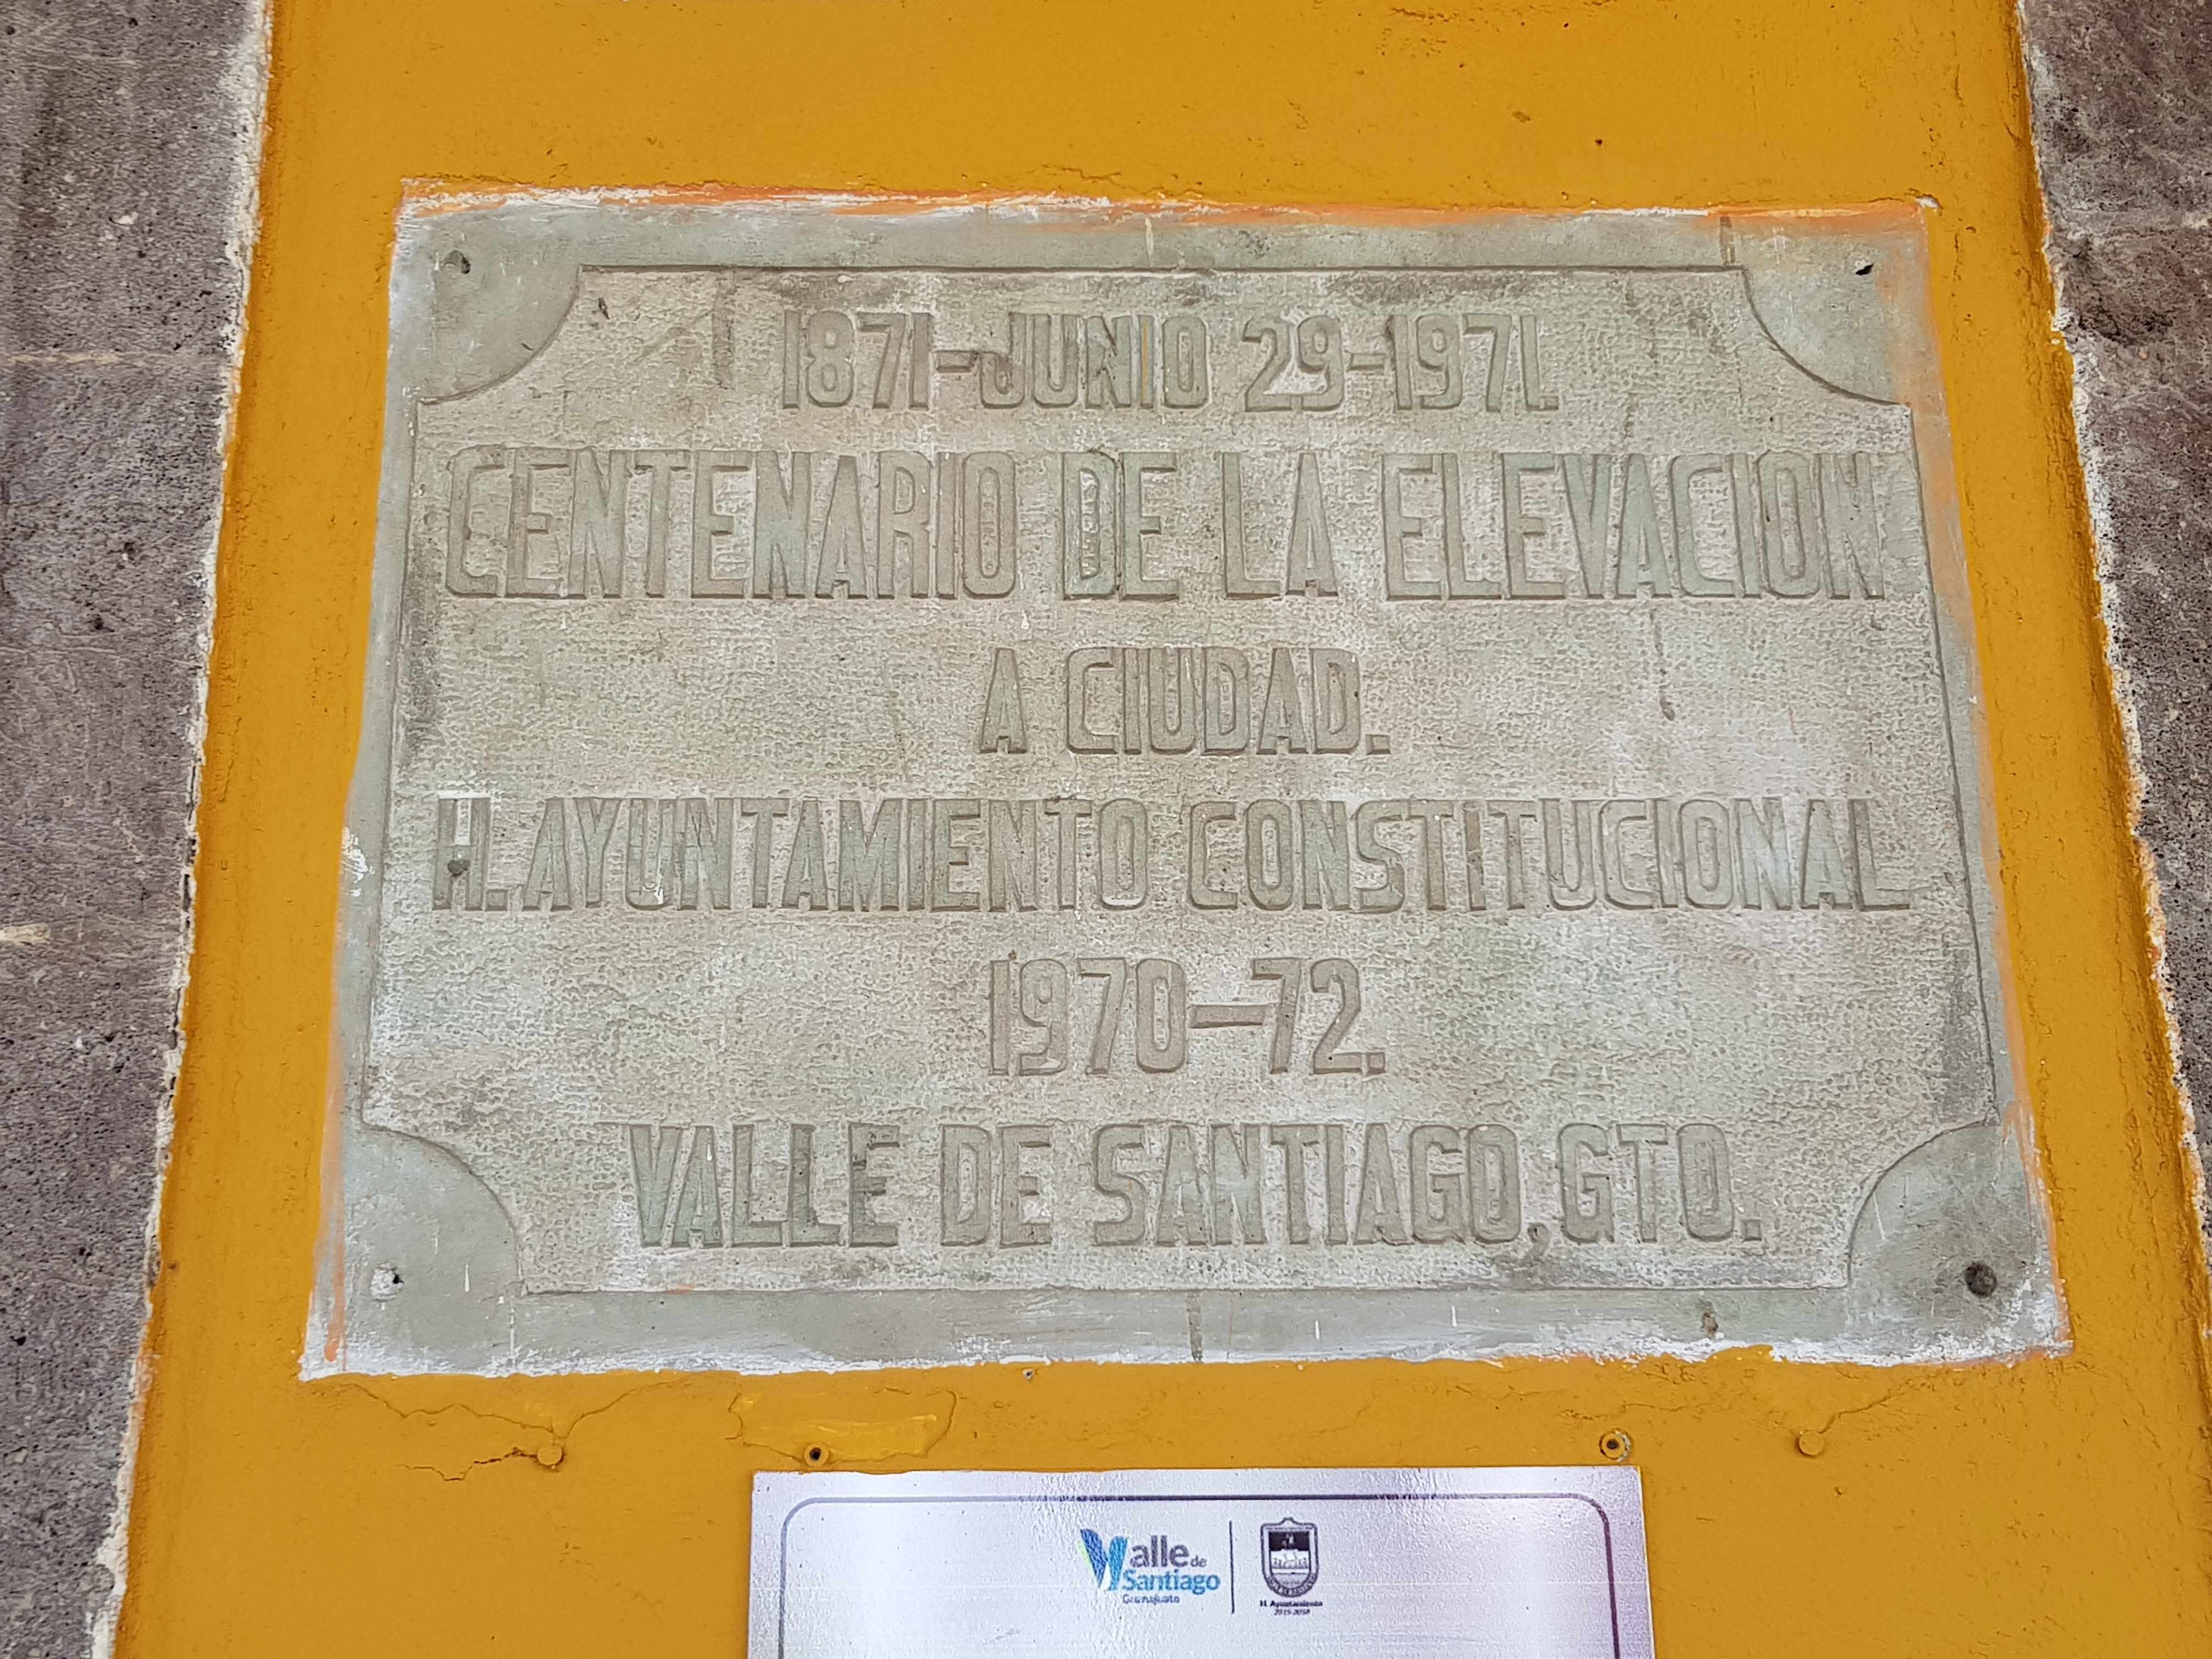 100th Anniversary of the City of Valle de Santiago Marker